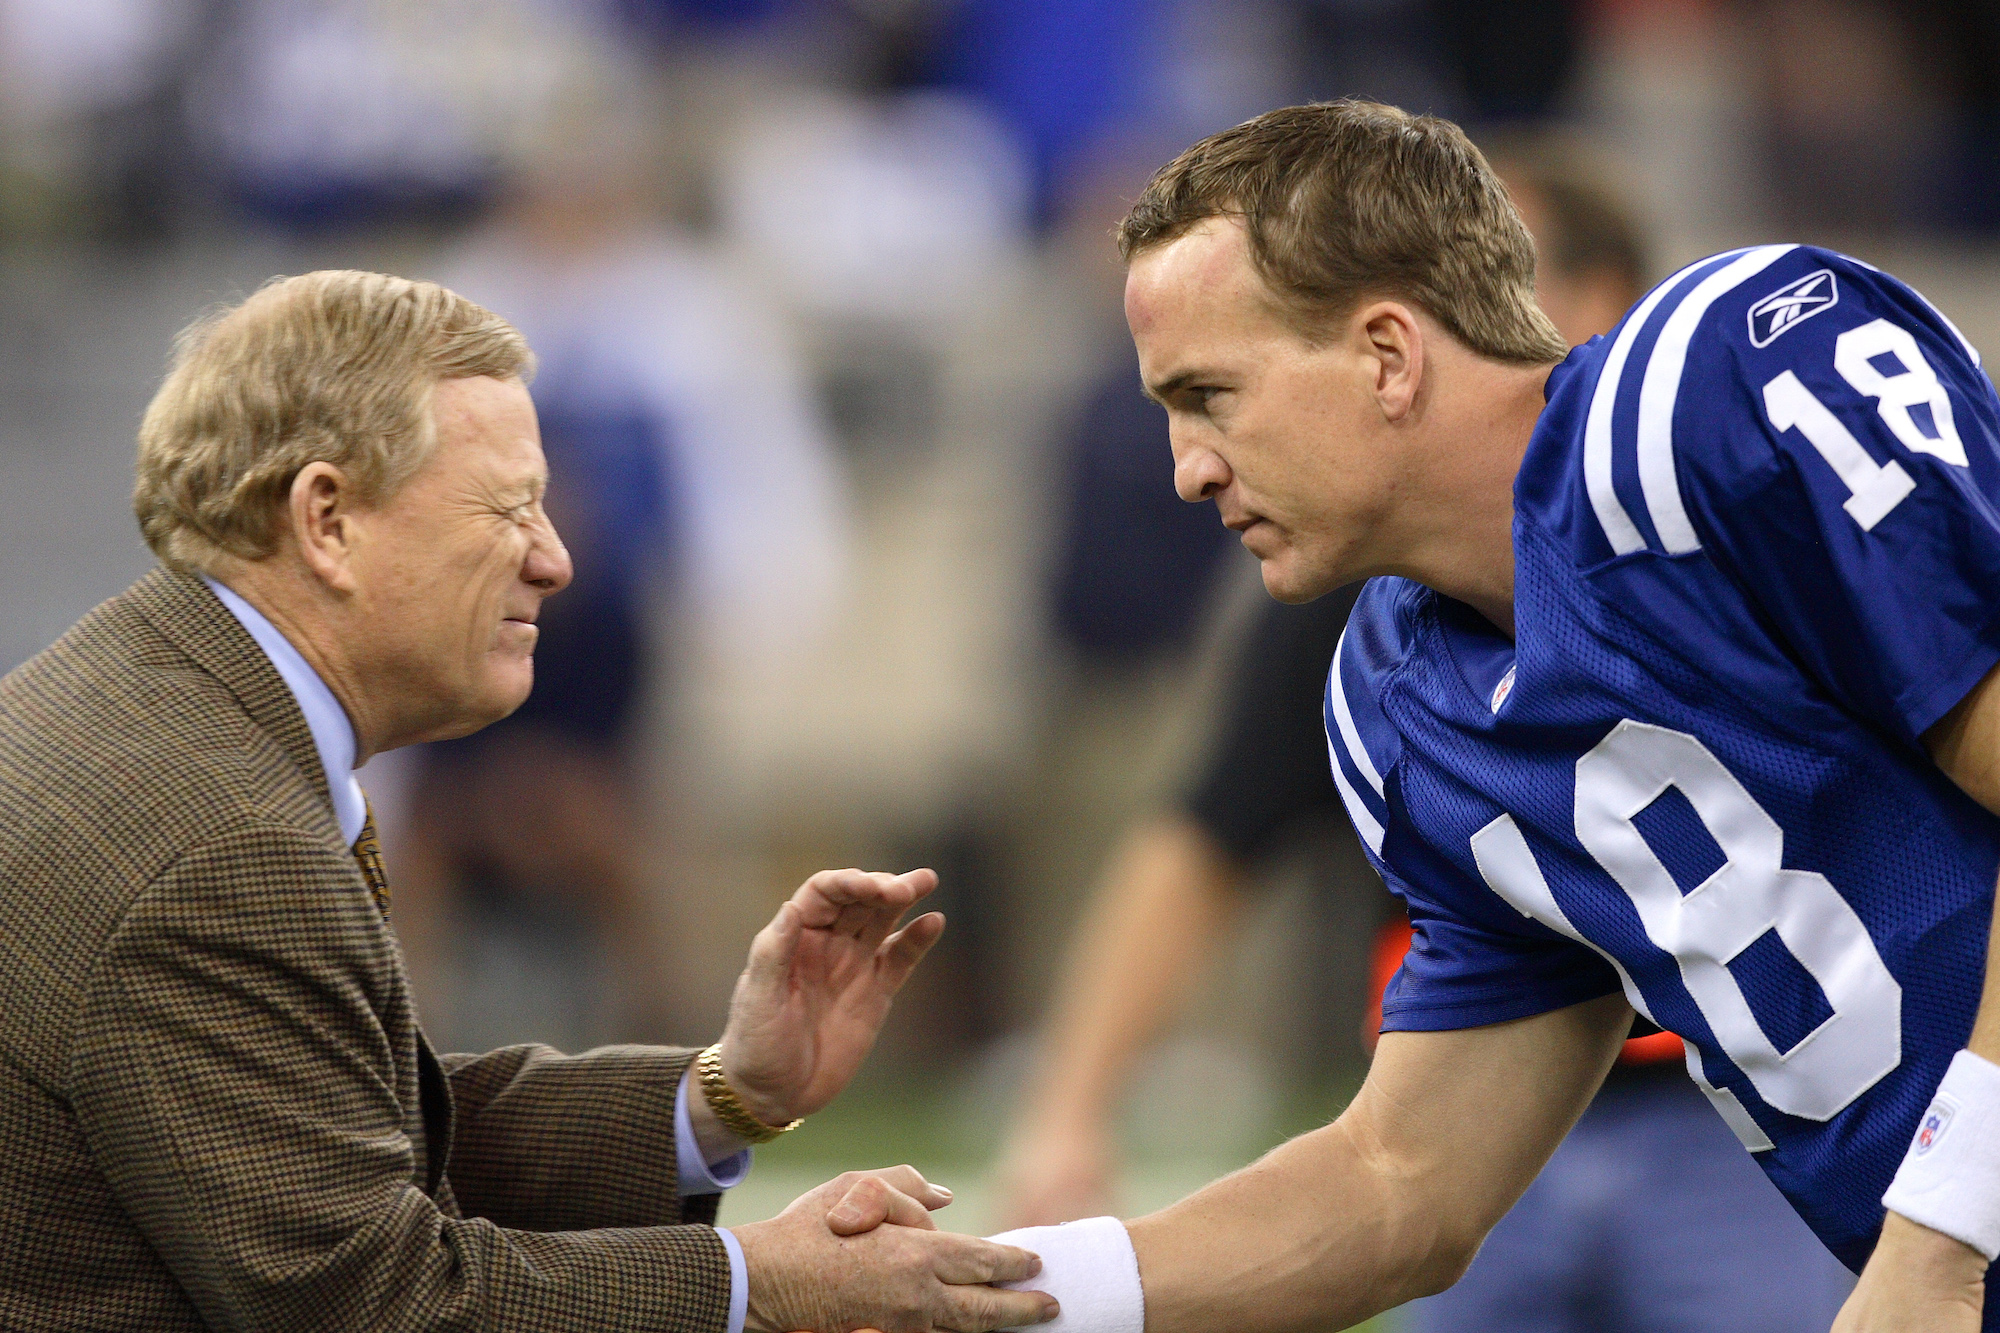 Before the 1998 NFL draft, Peyton Manning gave Bill Polian and the Indianapolis Colts a stern warning.